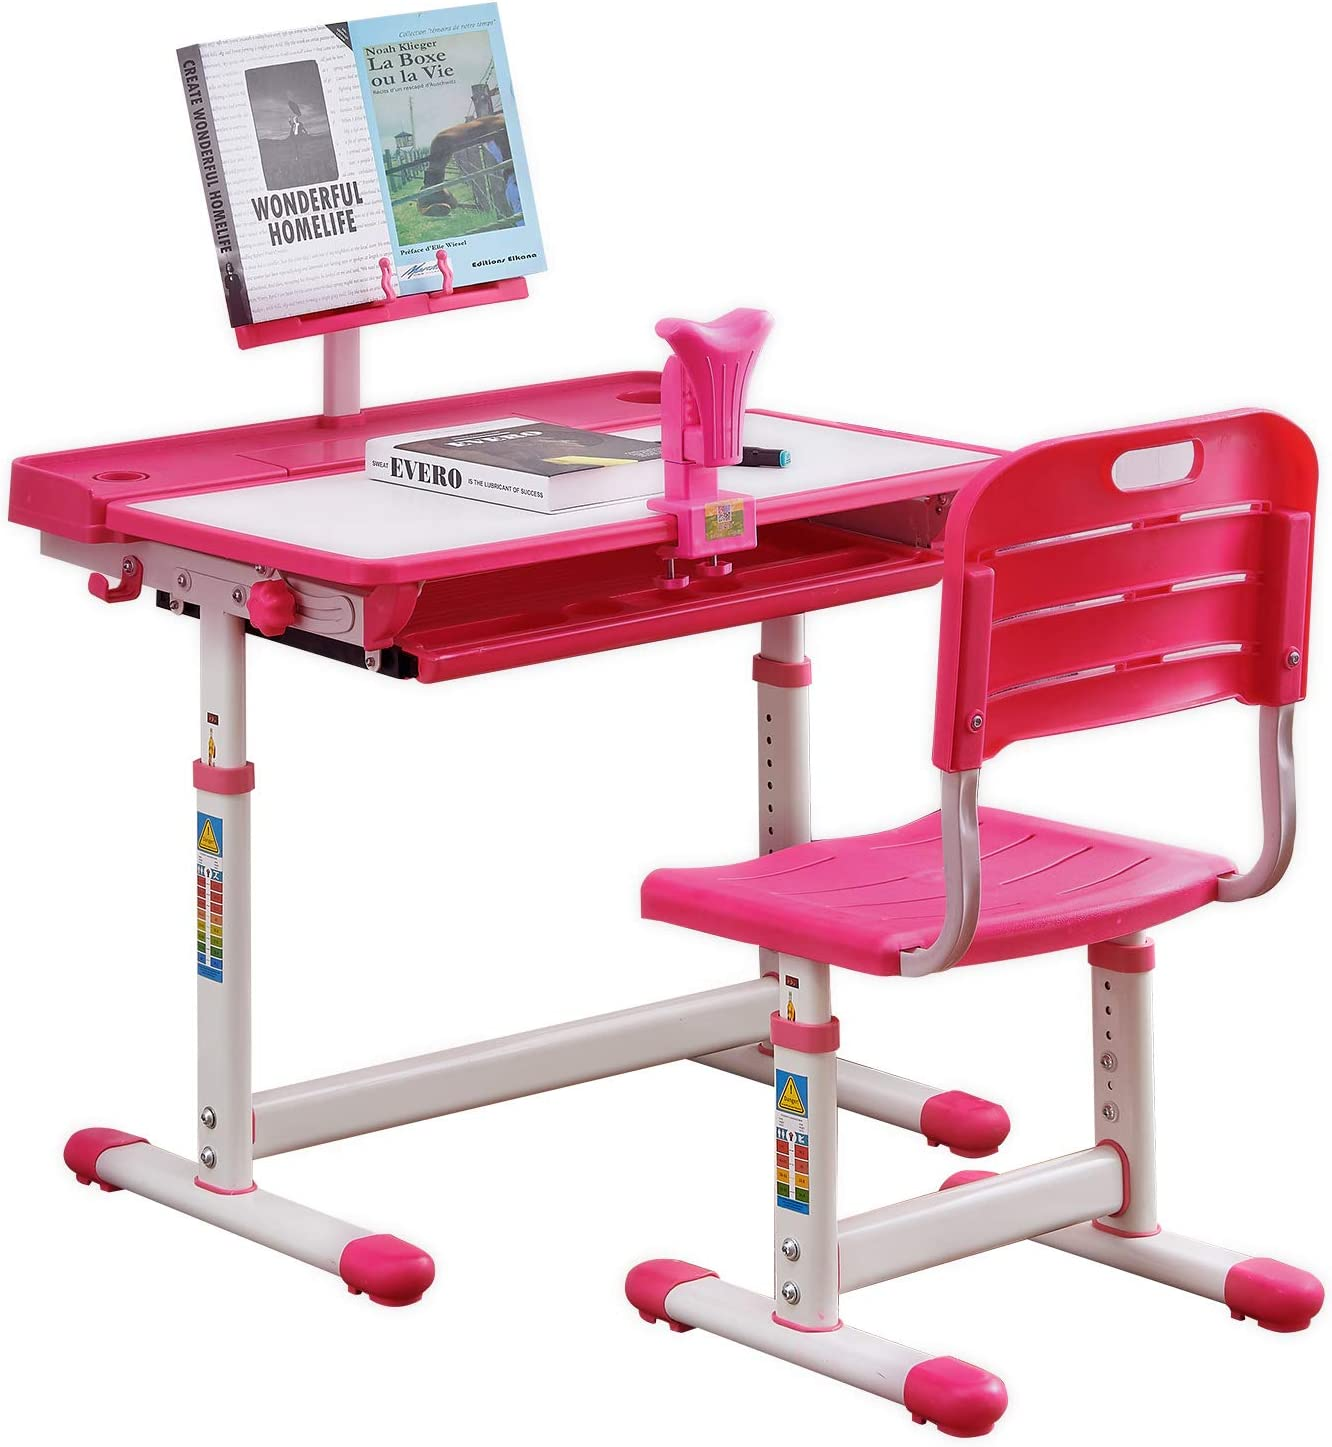 BOJOY Kids Desk,Kids Study Table and Chair Set Adjustable Children Desk School Student Writing Desk w/Pull Out Drawer Storage,Pencil Case,Bookstand (Pink)